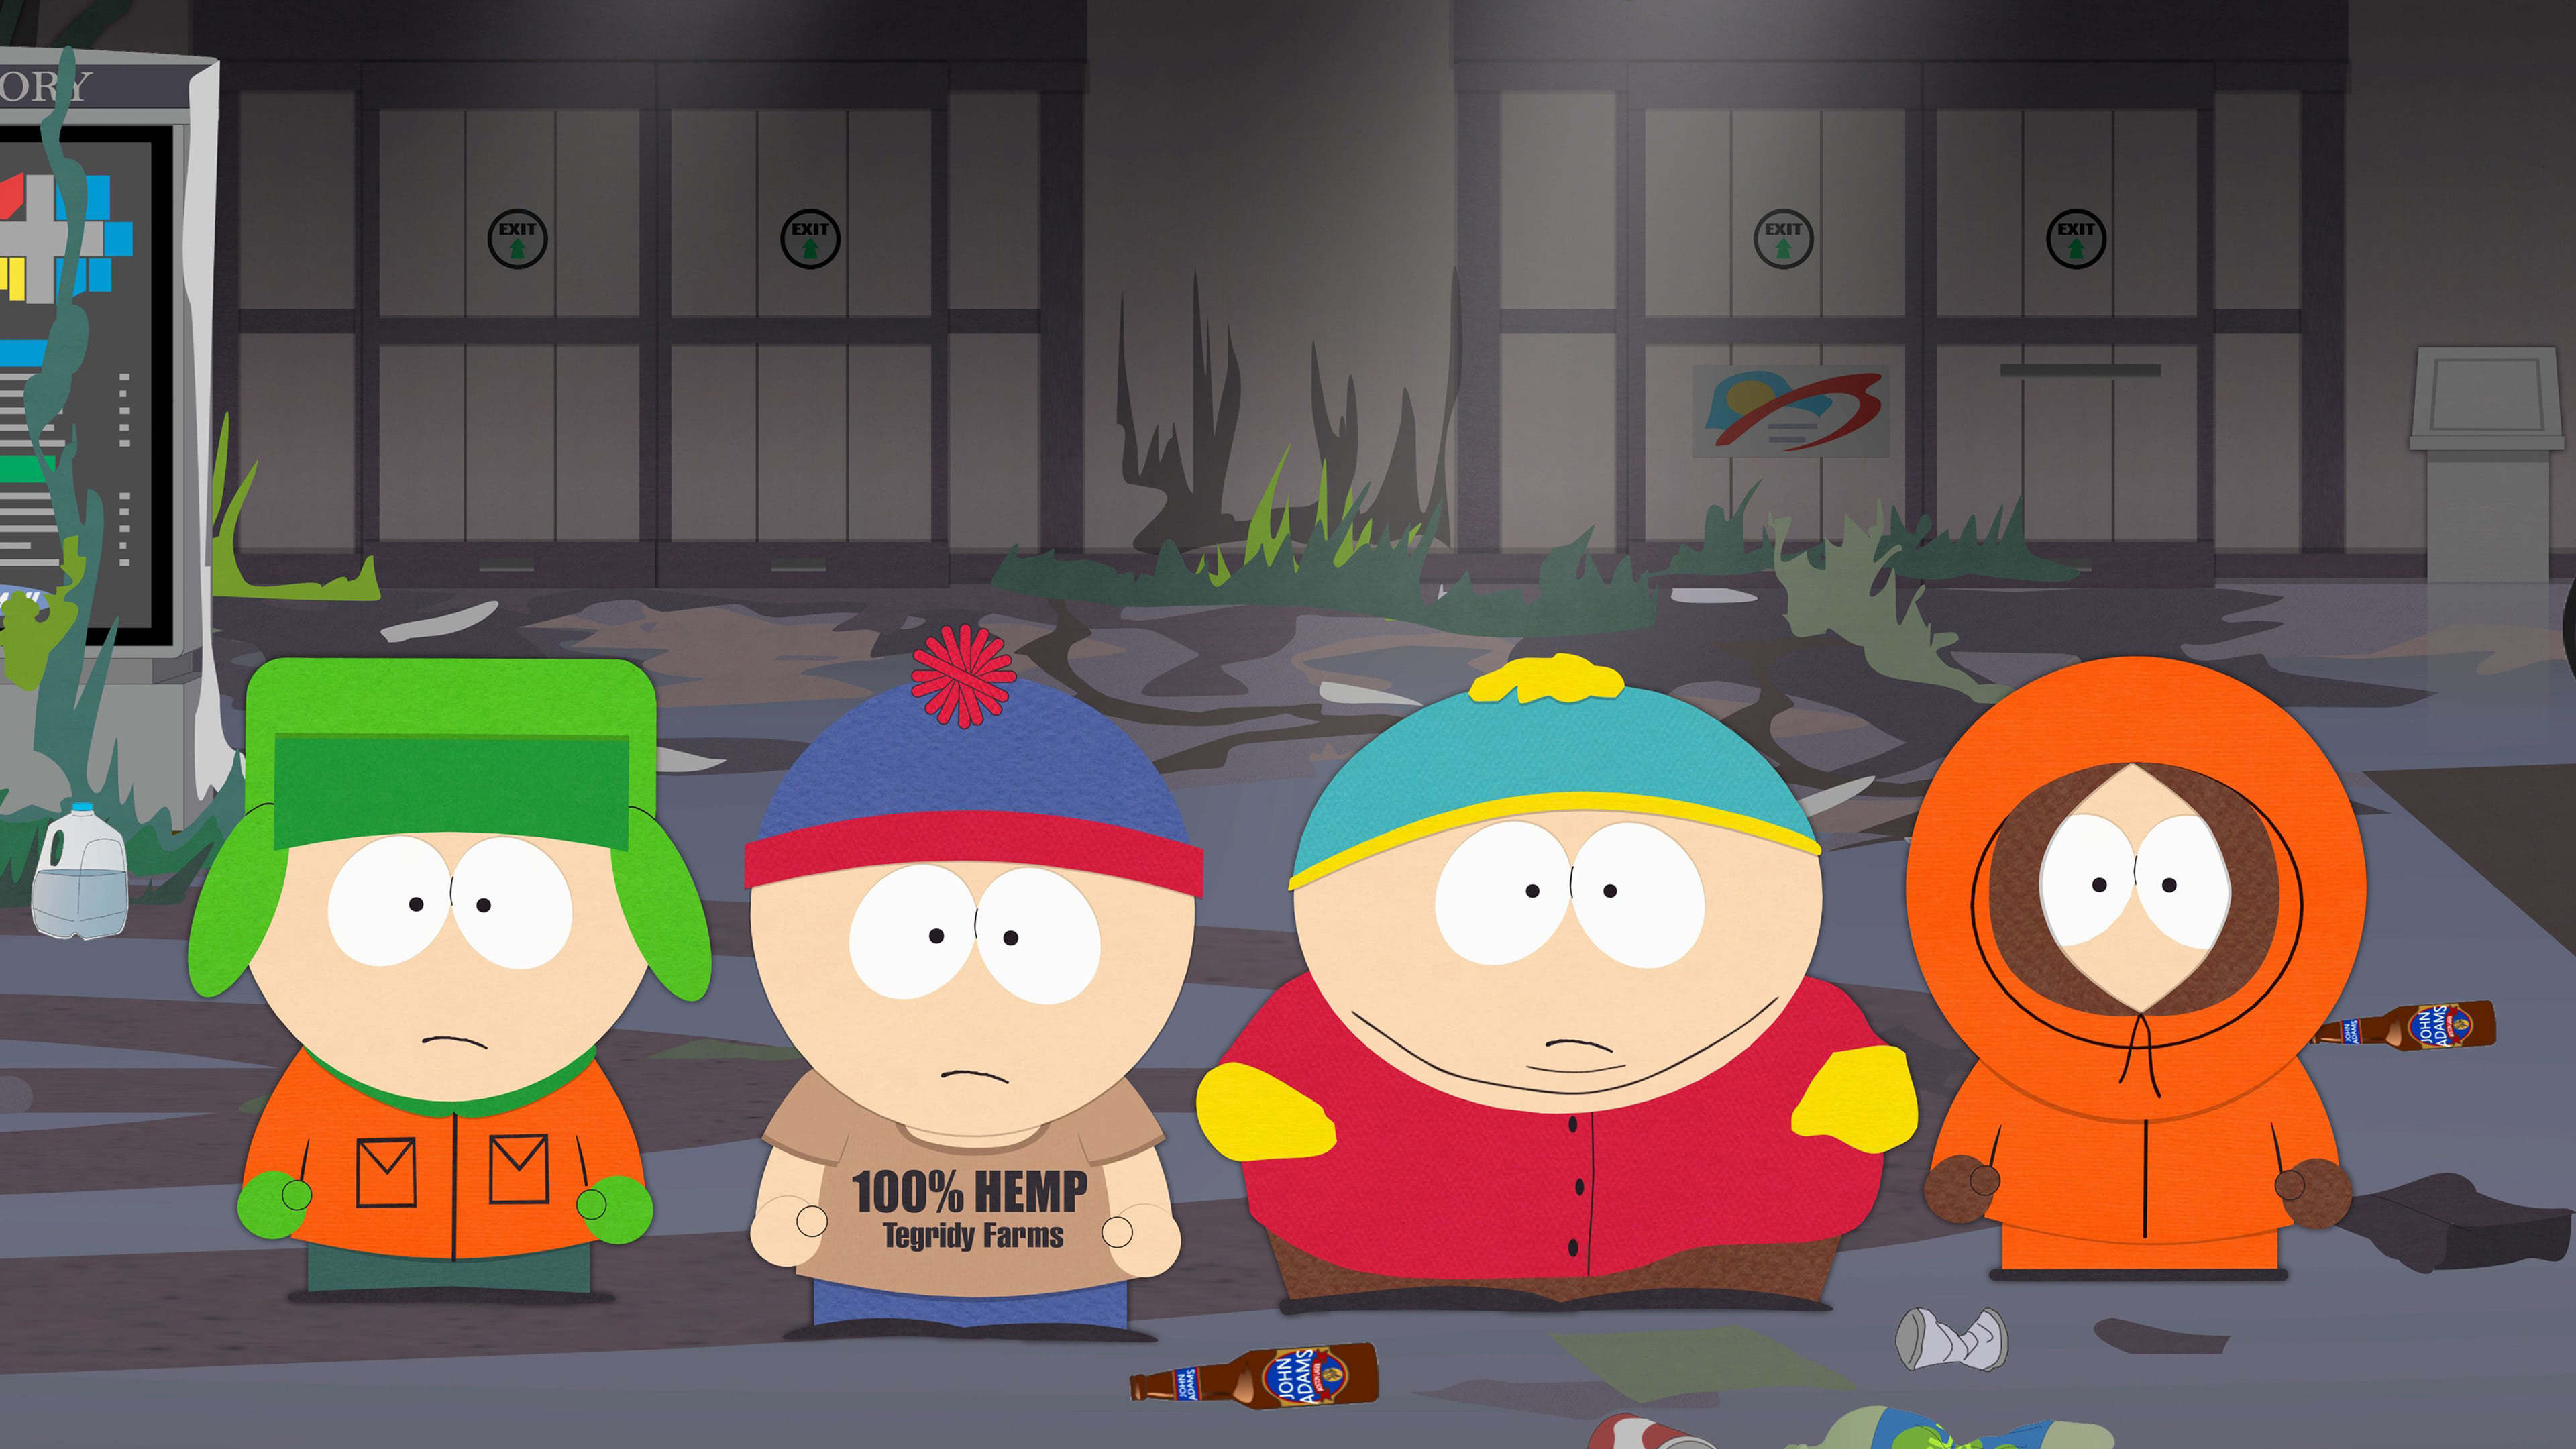 south park kyle stan cartman kenny uhd 4k wallpaper